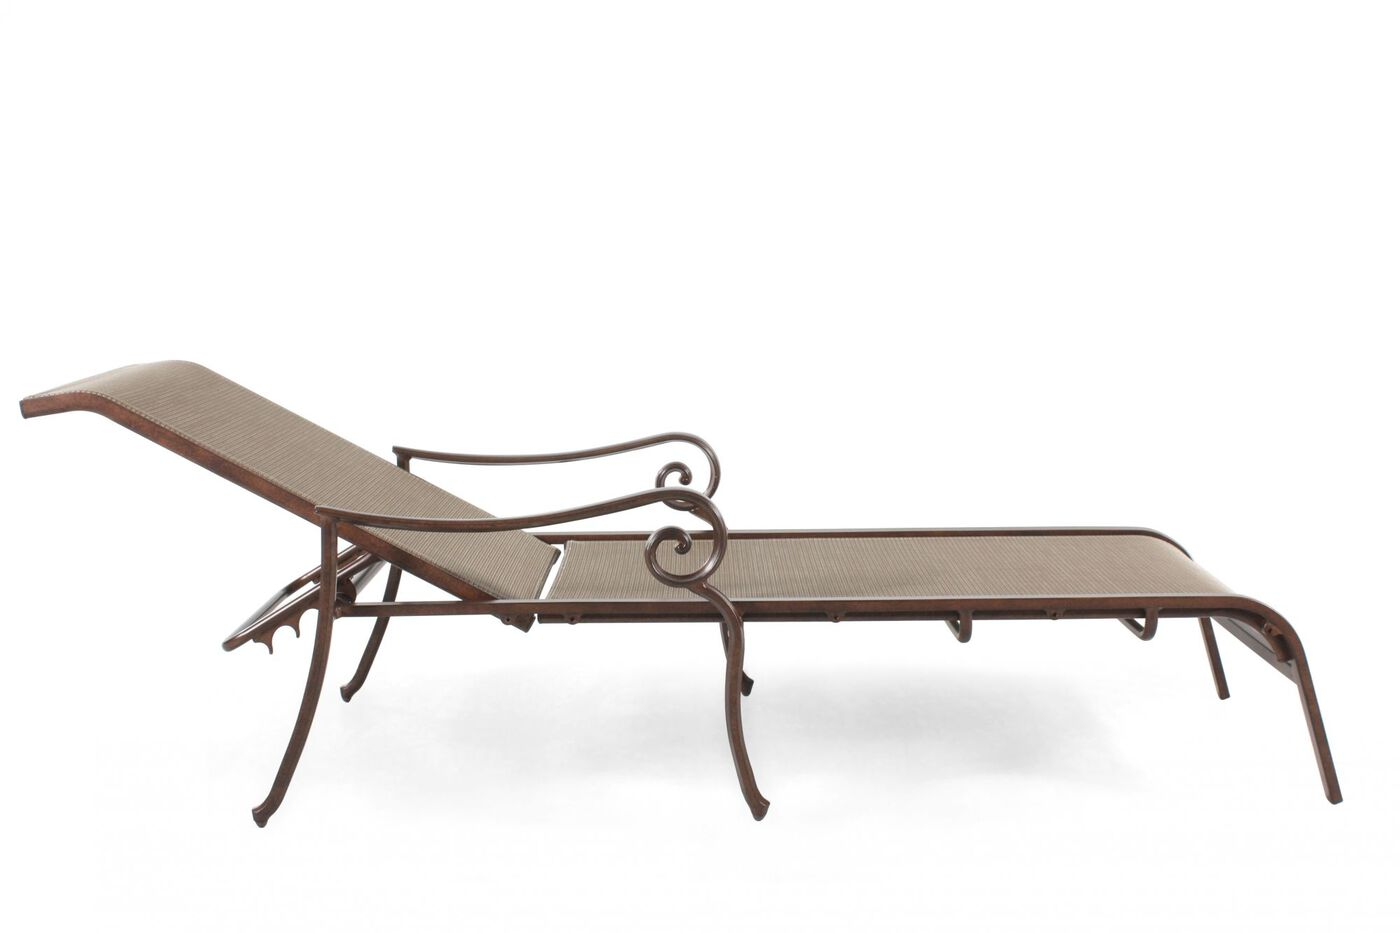 100 agio patio furniture chaise lounge toscana outdoor for Agio heritage chaise lounge